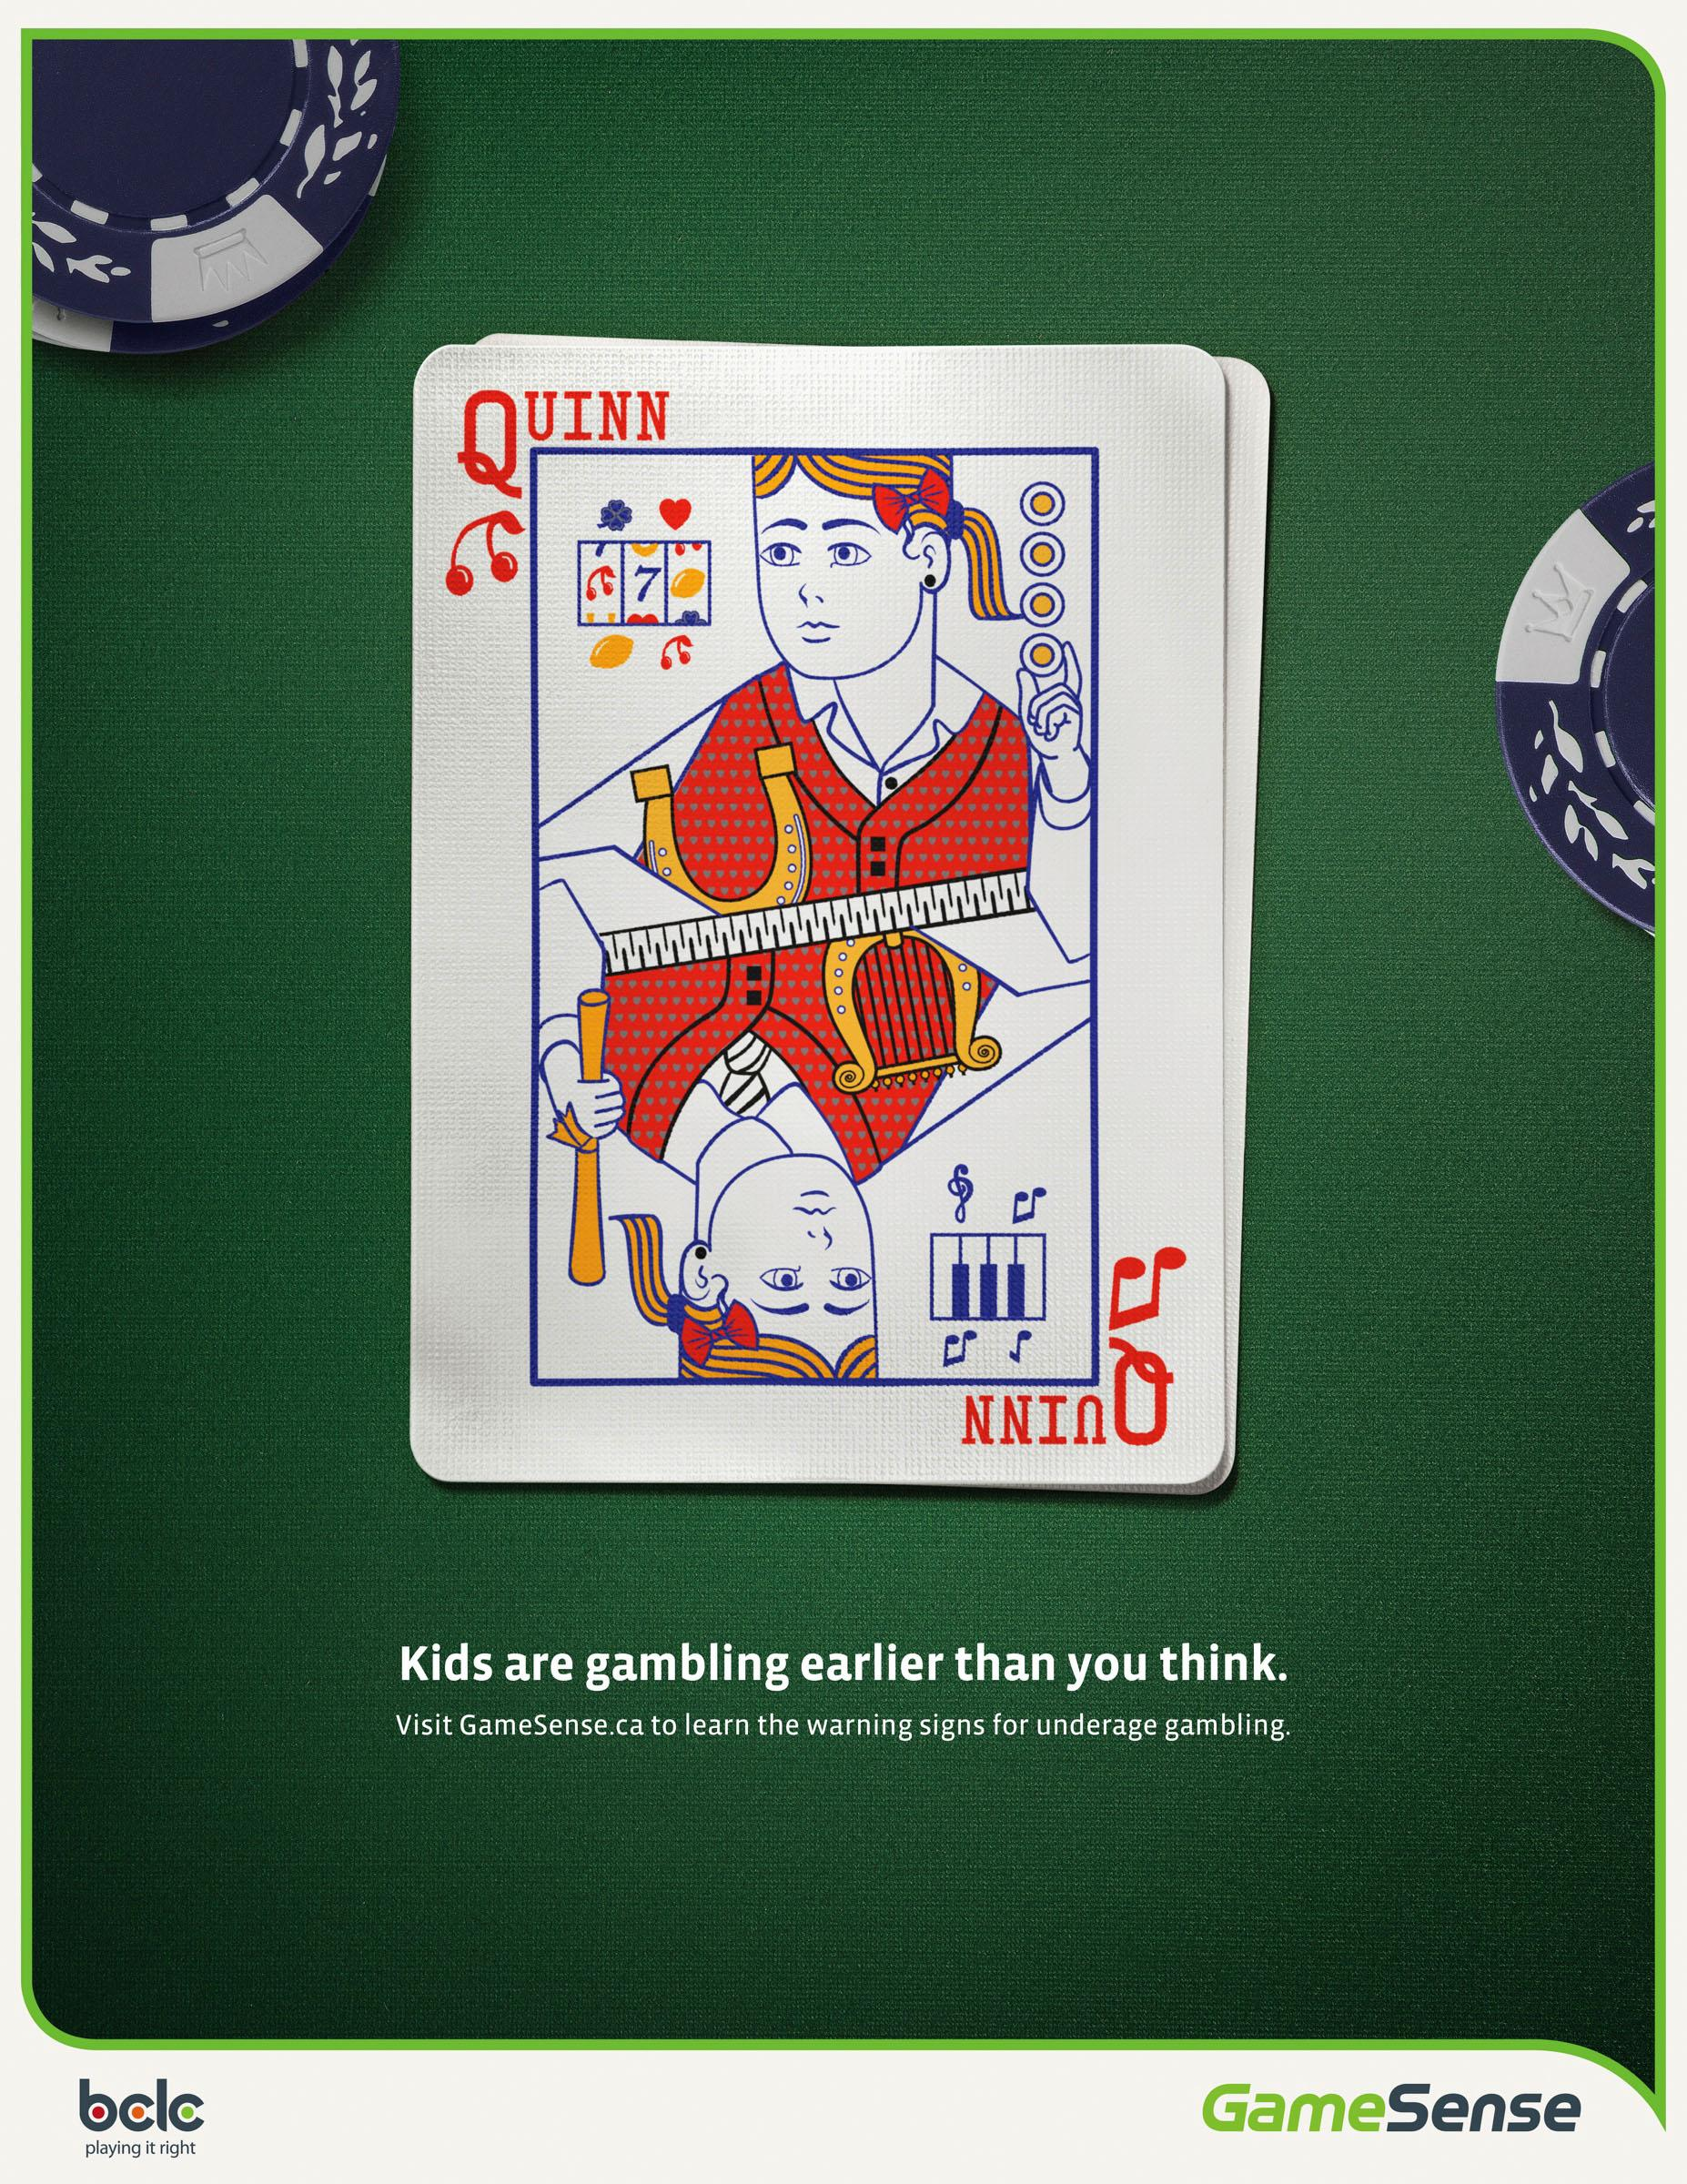 BC Lottery Corporation Outdoor Ad -  Quinn